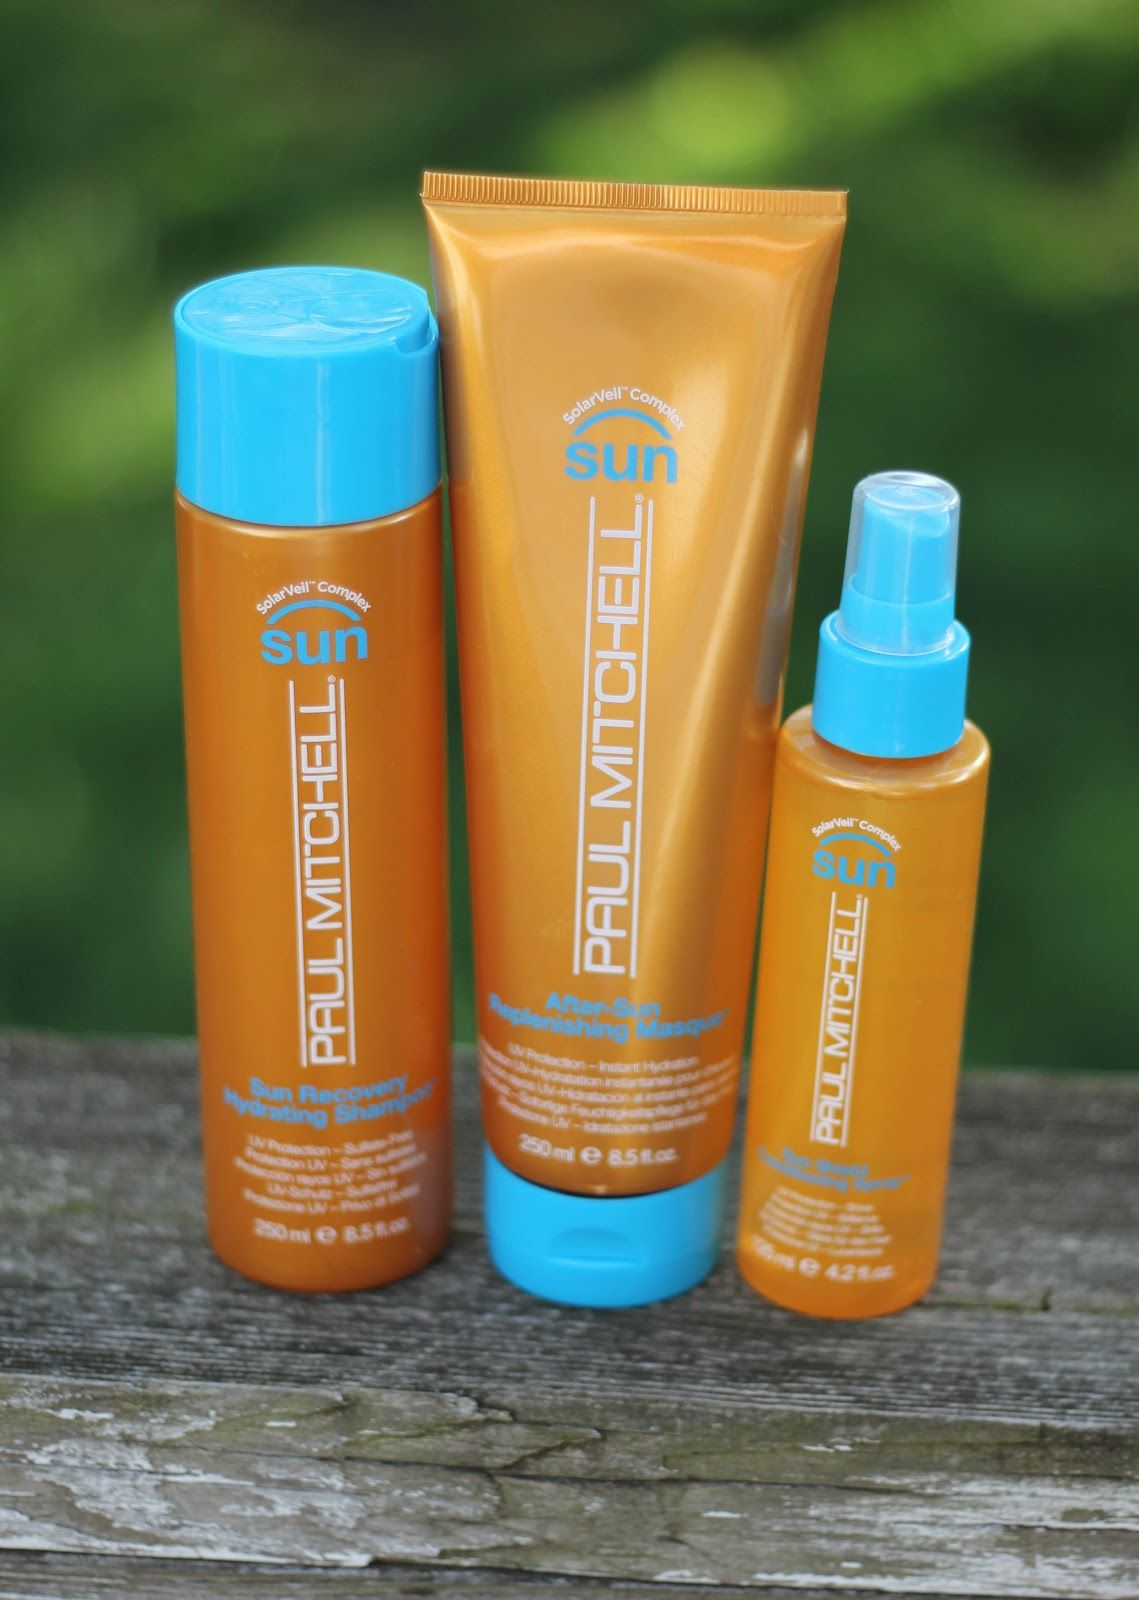 Paul Mitchell After Sun Care Shampoo, Replenshing Masque, and Conditioning Spray.  This stuff is amazing for the summertime!